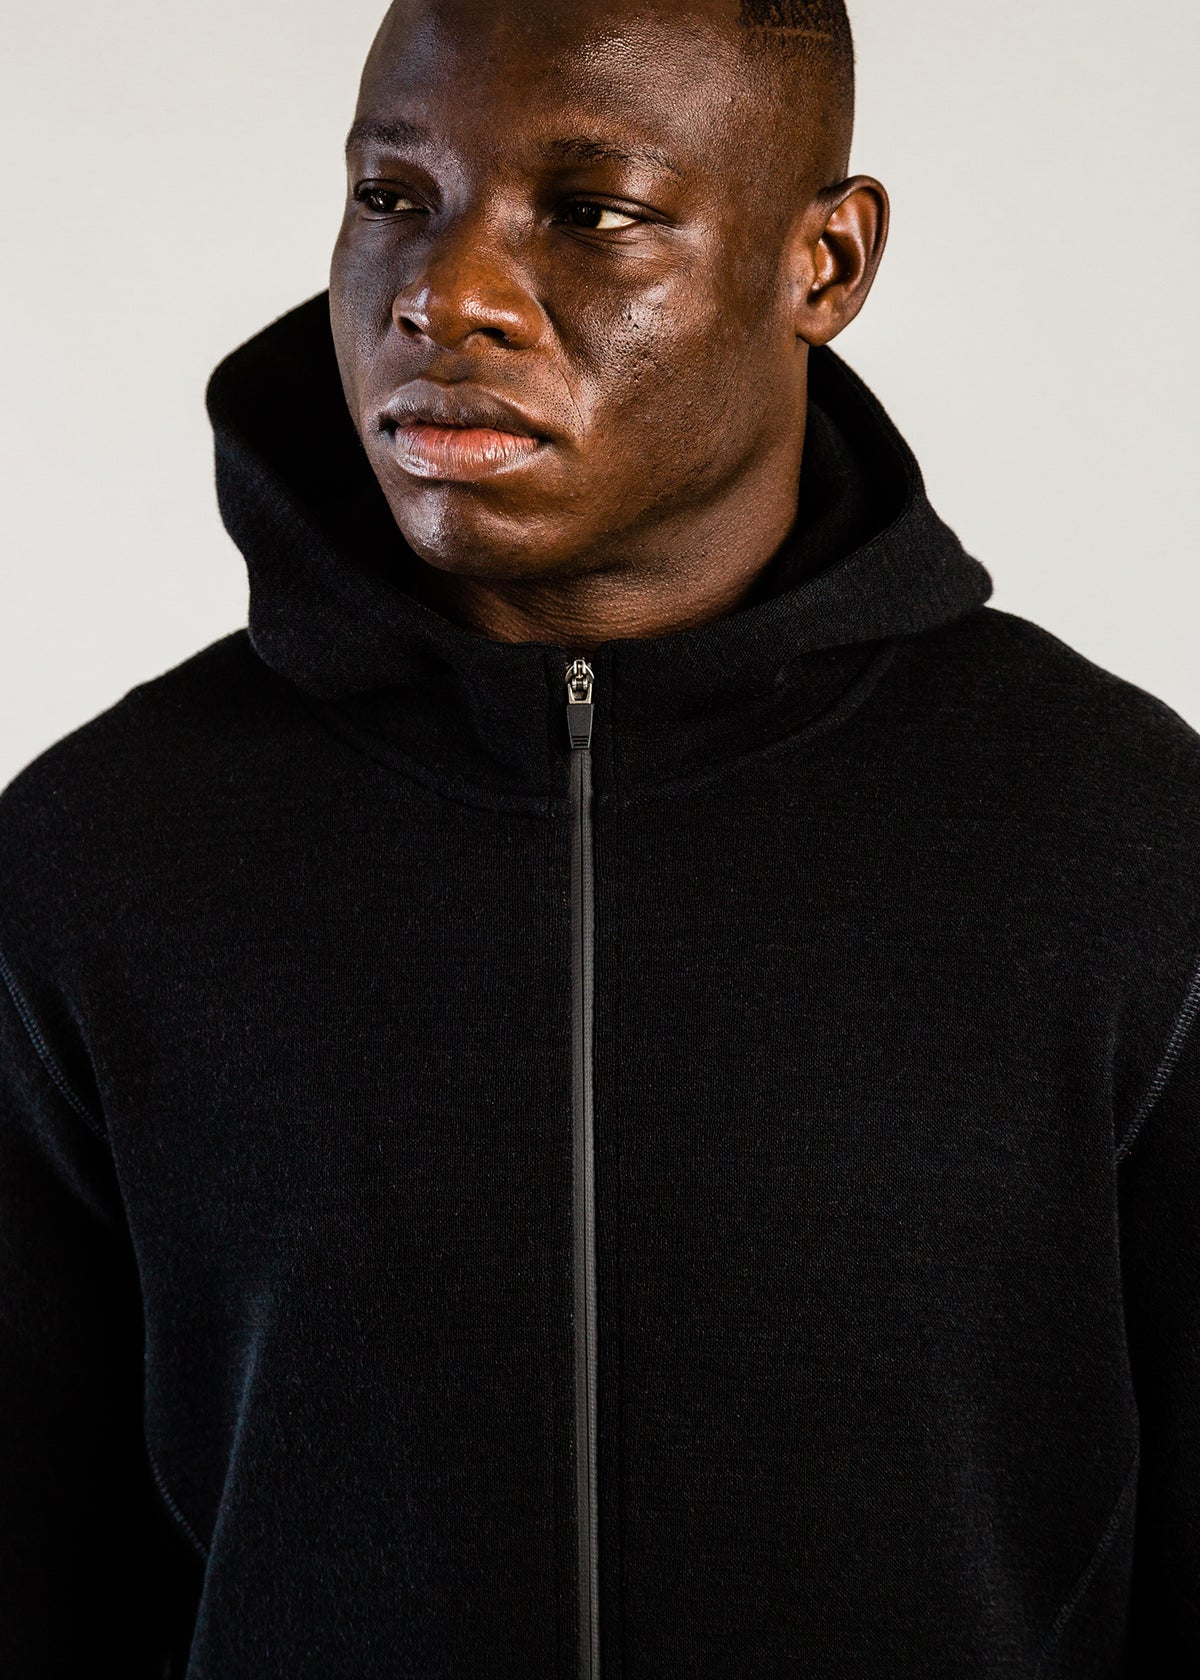 201 - NYLON HOODED ZIP - BLACK - Wilson & Willy's - MPLS Neighbor Goods